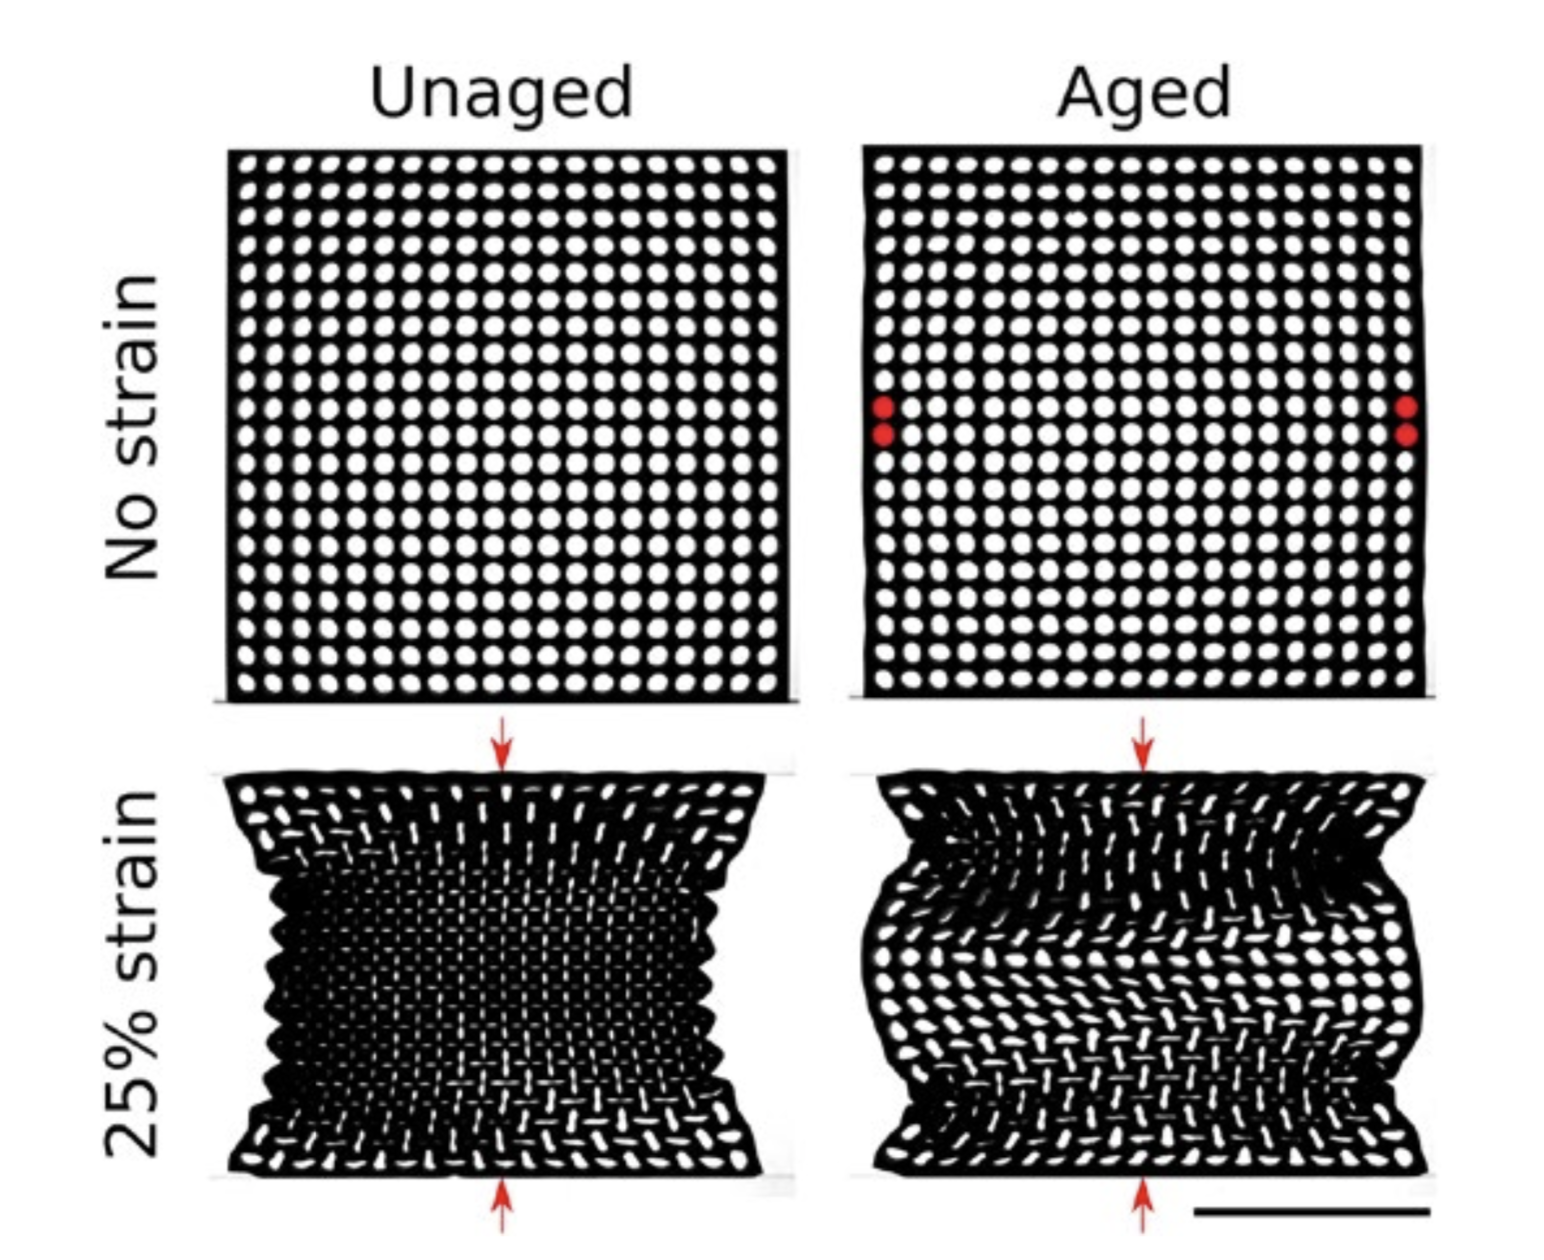 Researchers use a materials memory to encode unique physical properties